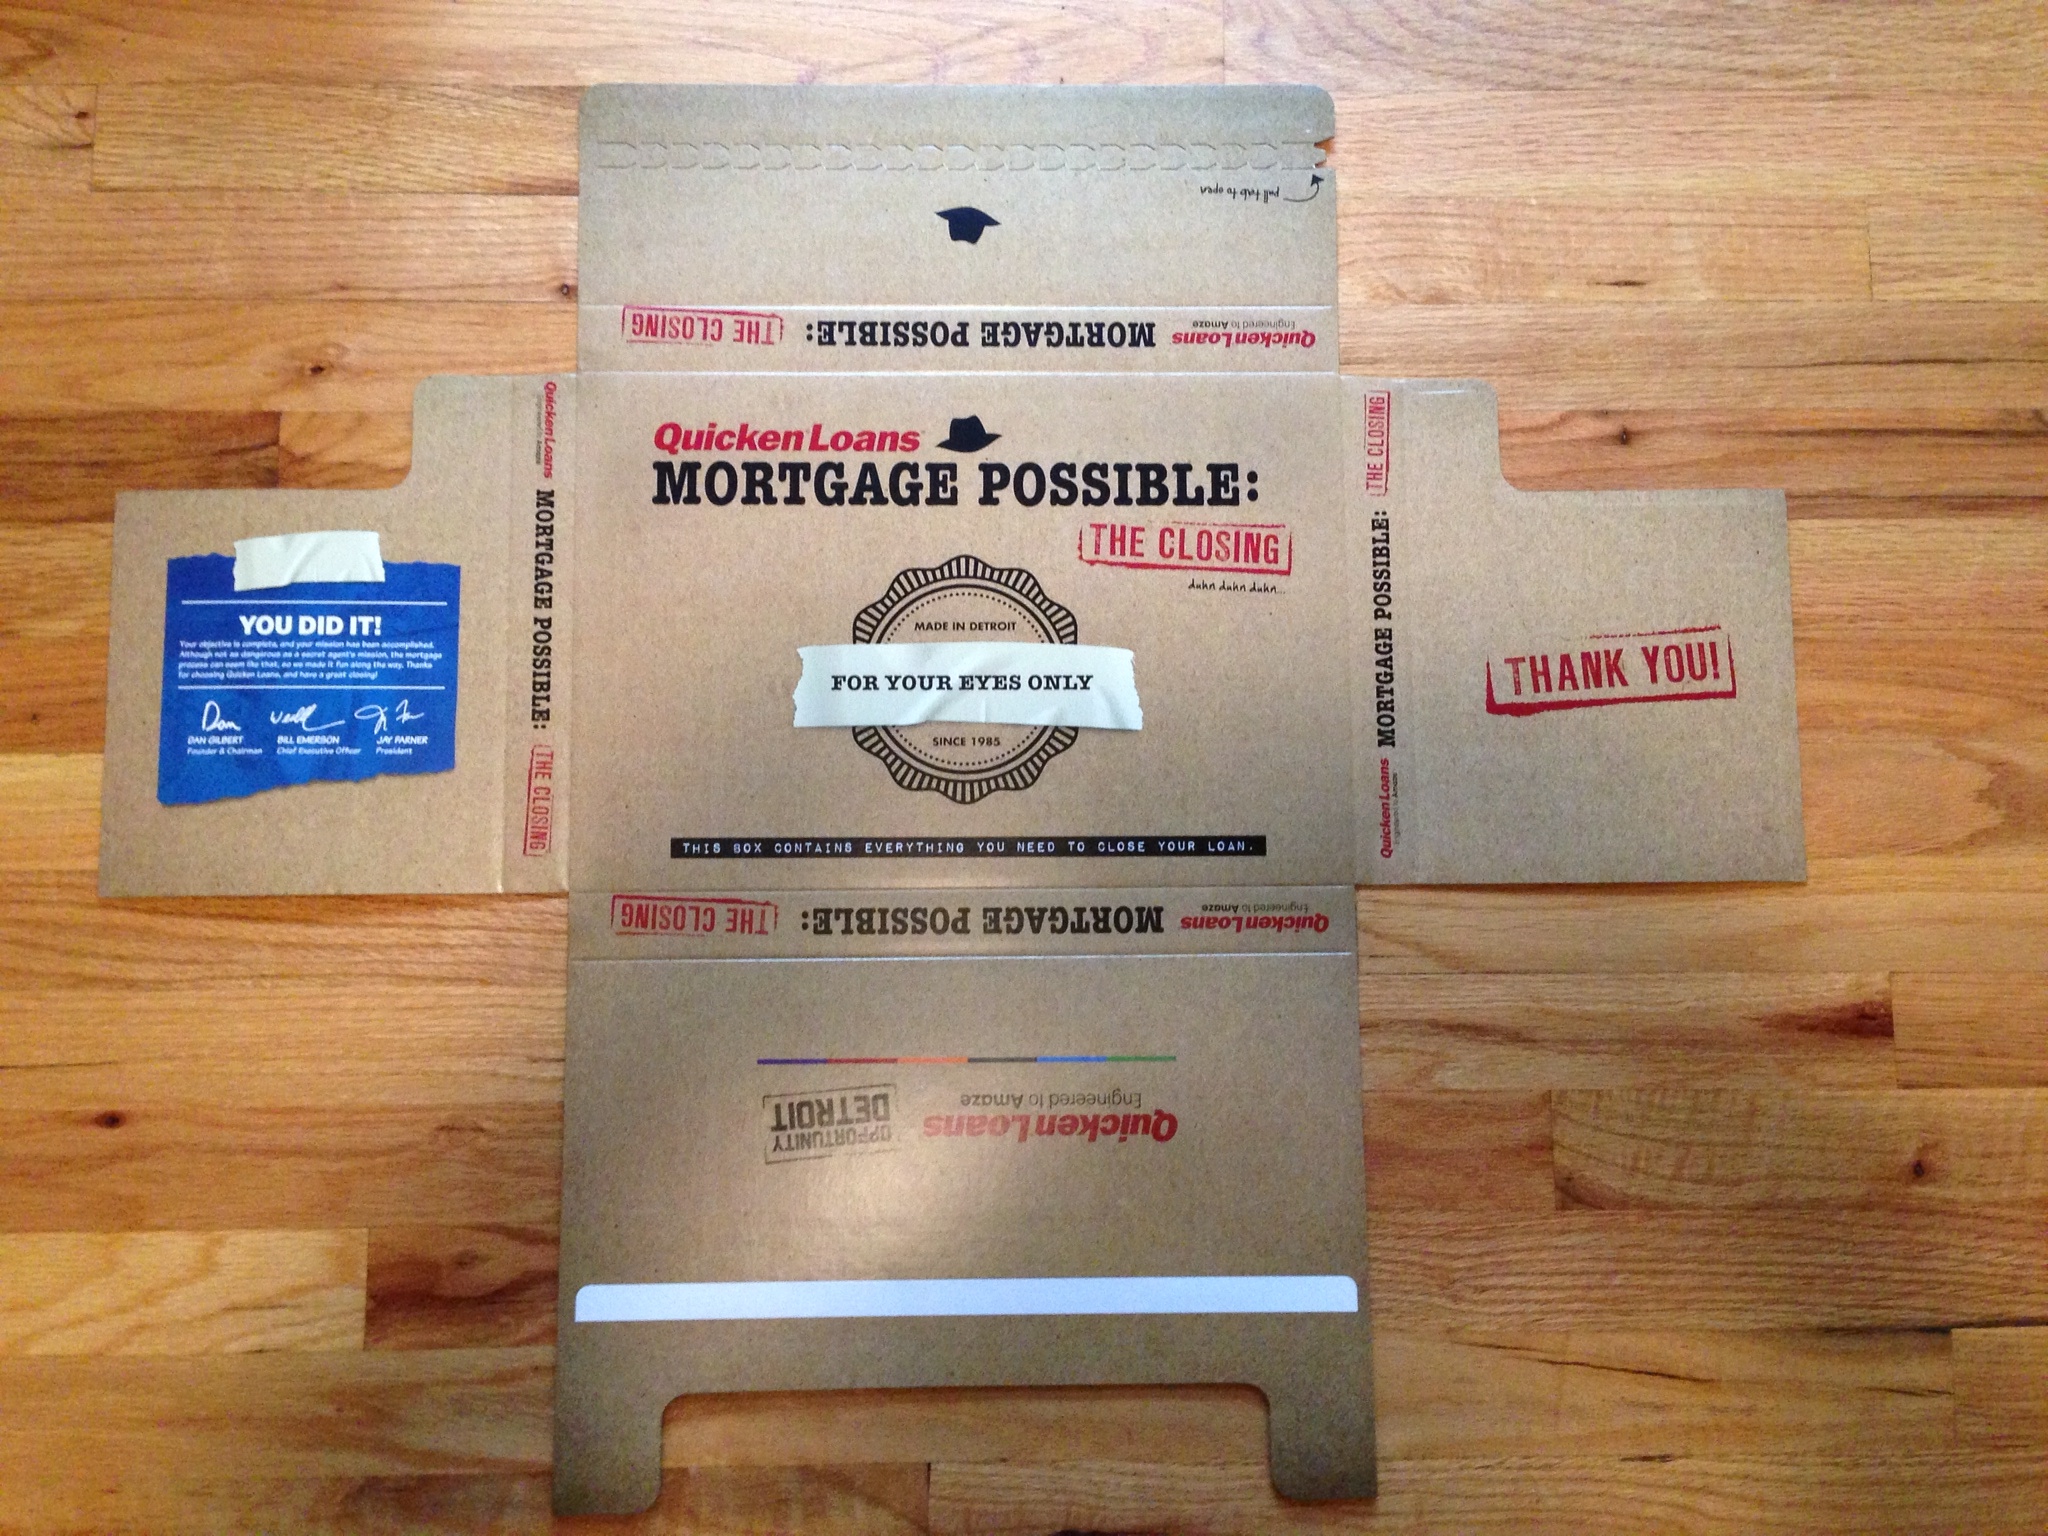 Quicken-Loans-Mortgage-Possible-Closing-Box-Packaging-Flat-Outside.JPG